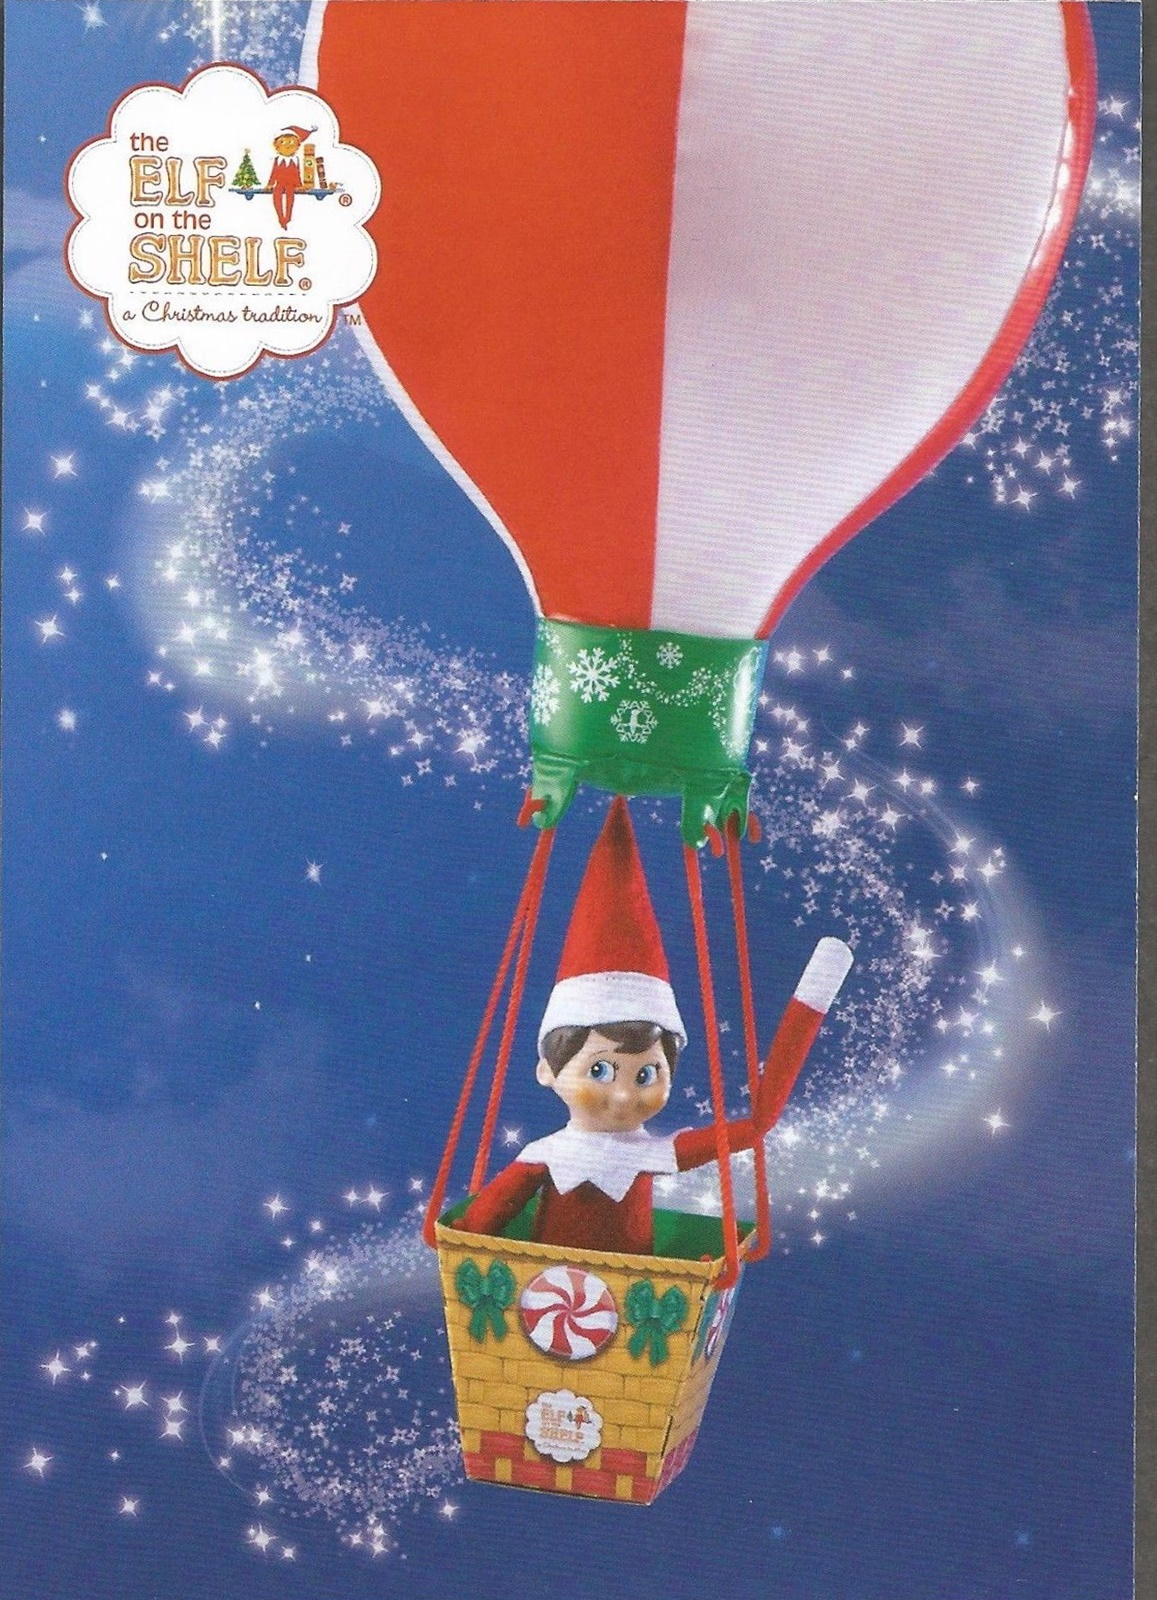 One of six The Elf on the Shelf postcards included in a pack sold by An Post with it's 2018 Elf on the Shelf Christmas stamp.